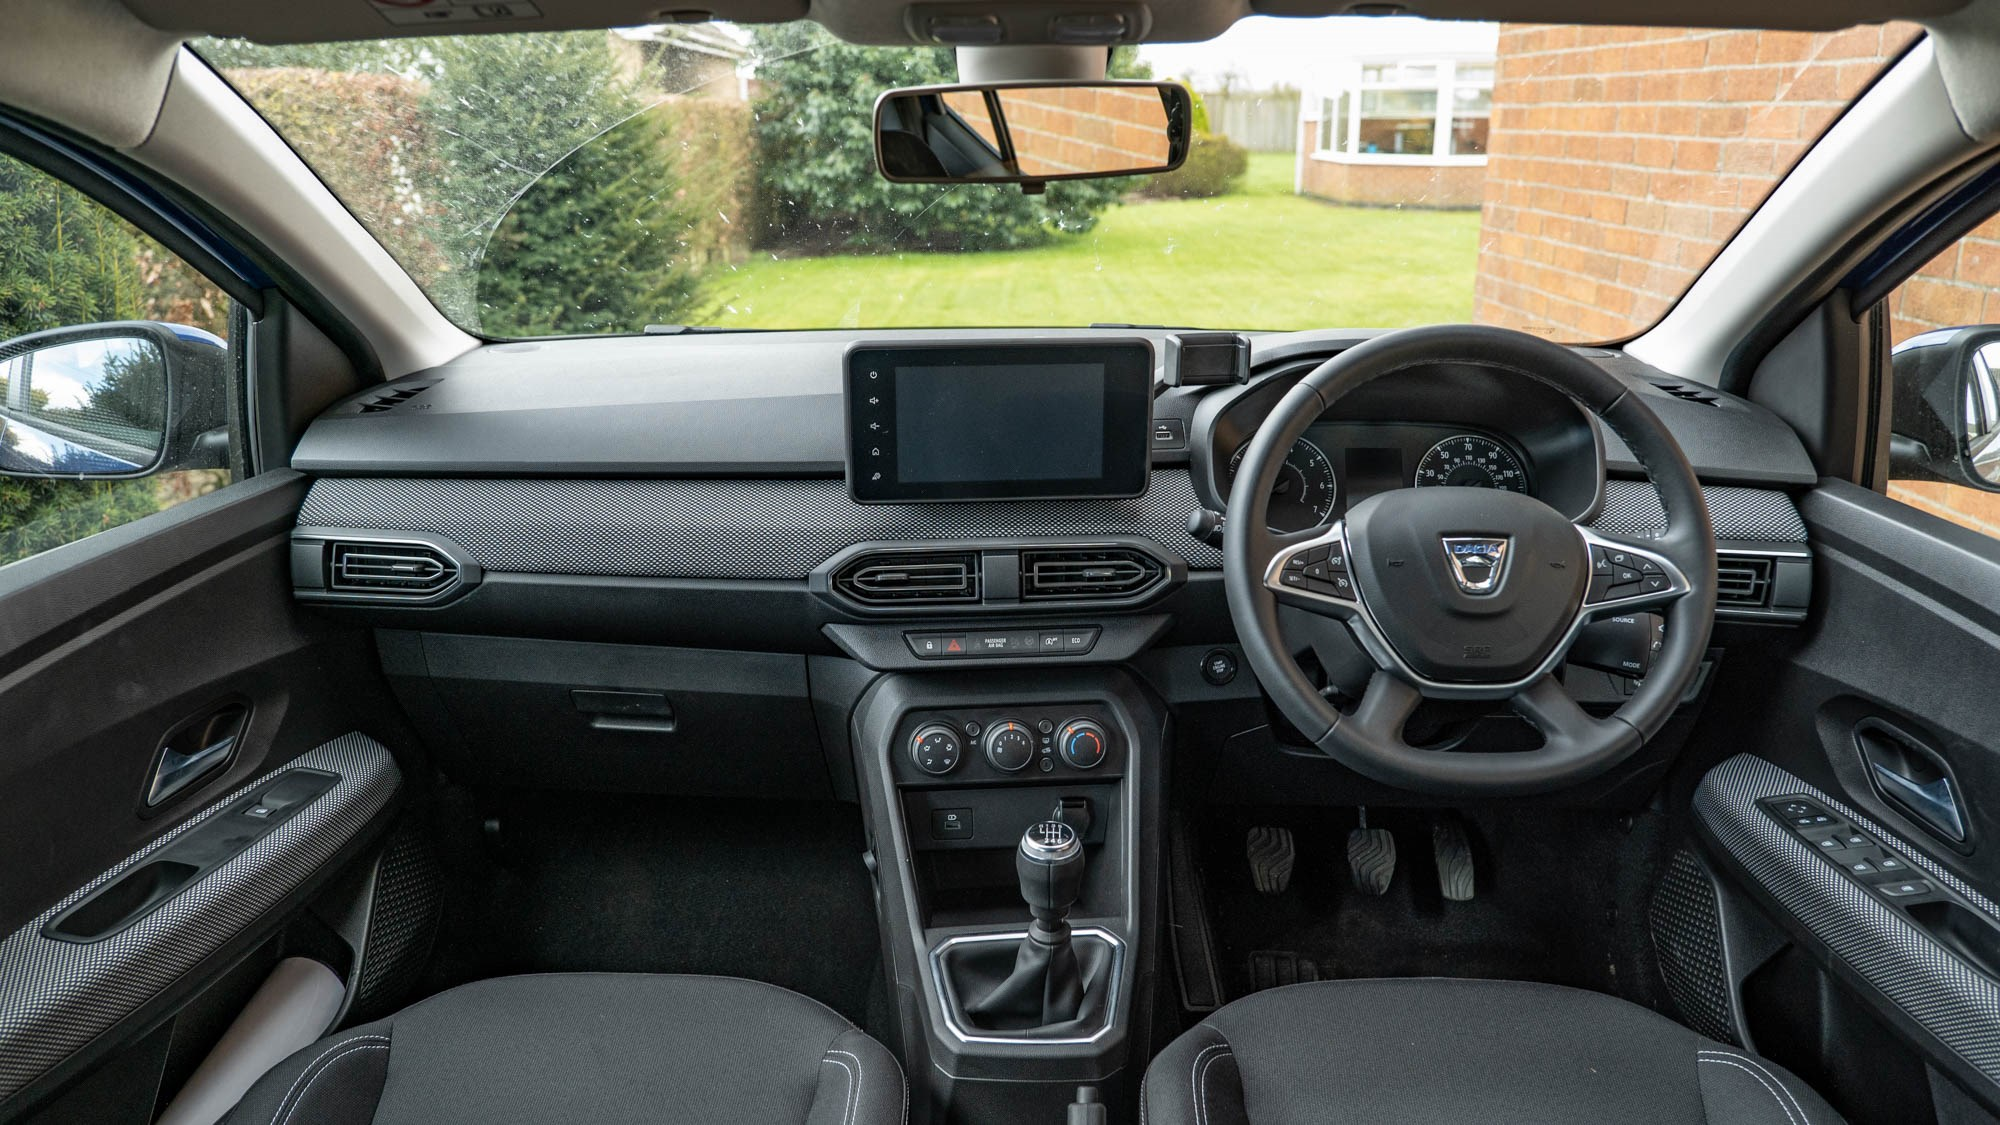 Dacia Sandero Comfort interior, dashboard and infotainment